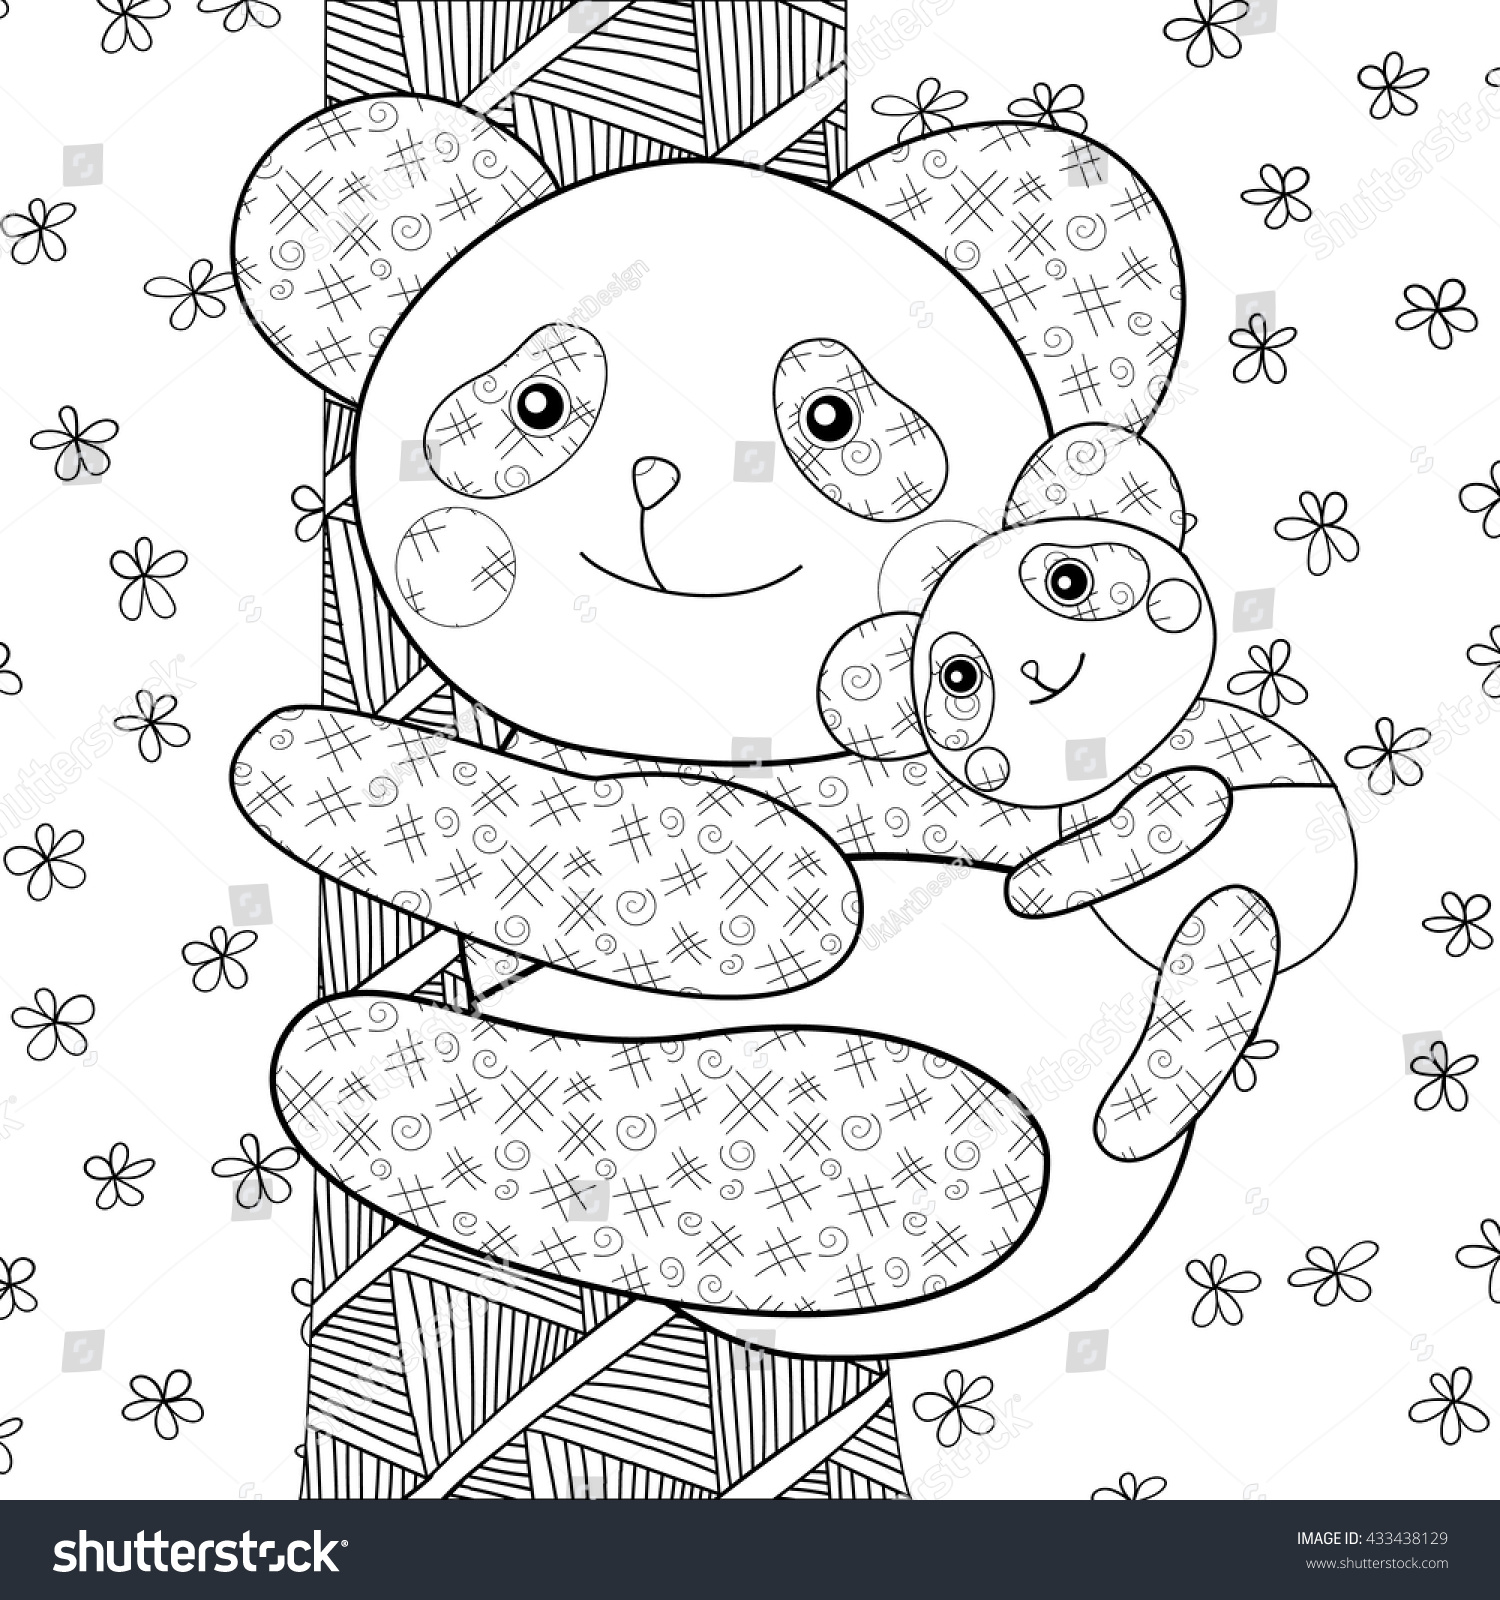 whimsical bear coloring pages - photo#25